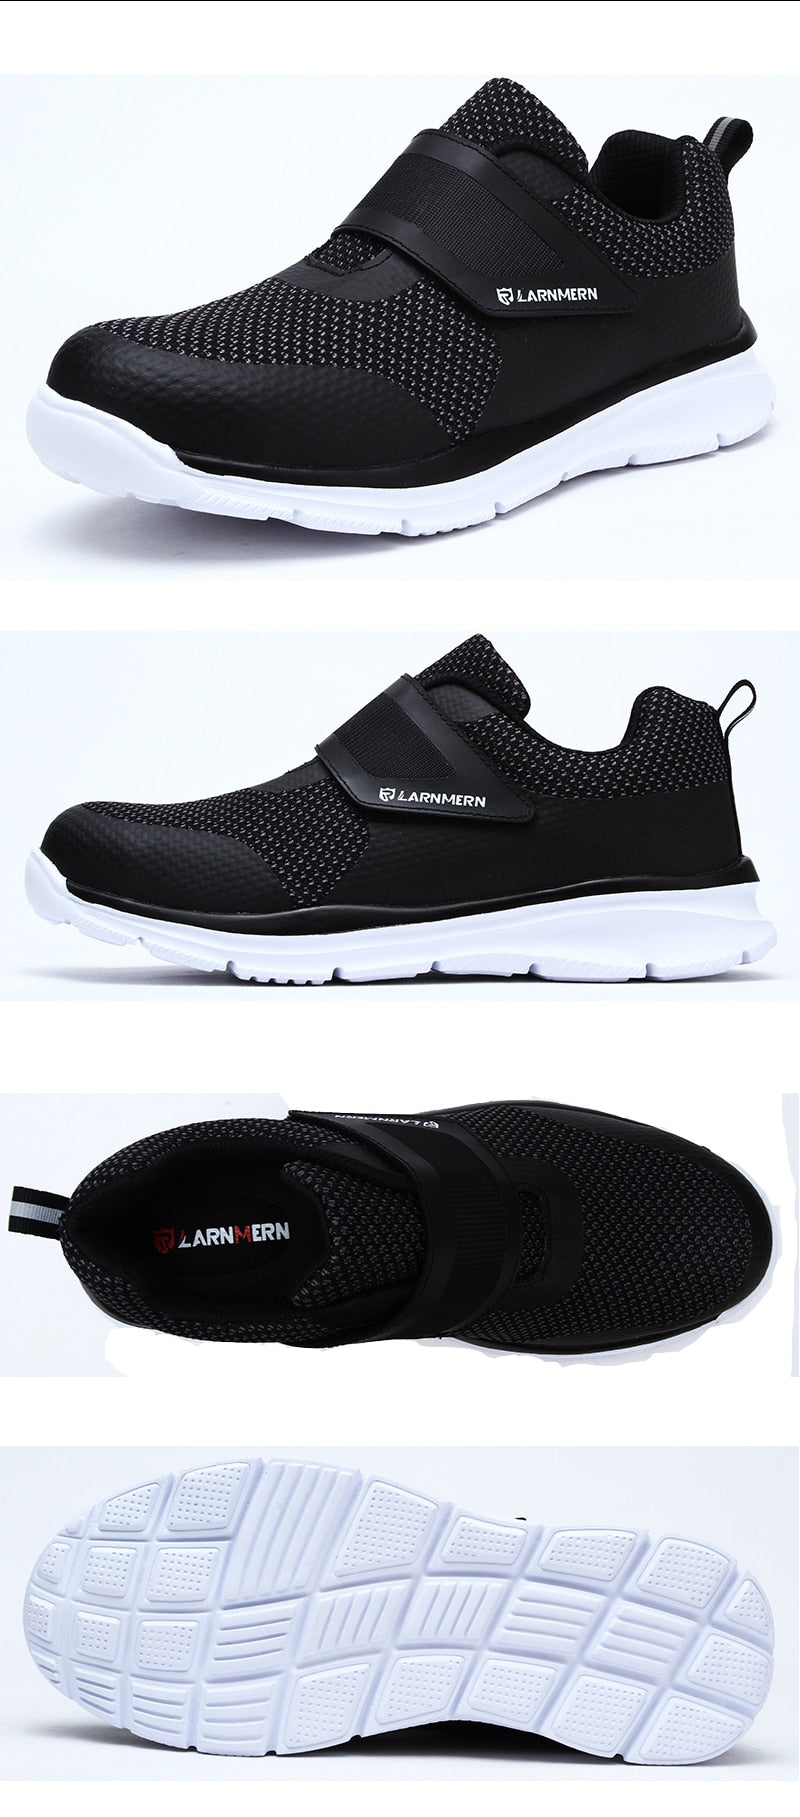 d4e8a1aebb9bad LARNMERN Men's Safety Shoes Steel Toe Construction Protective Footwear  Lightweight 3D Shockproof Work Sneaker Shoes For